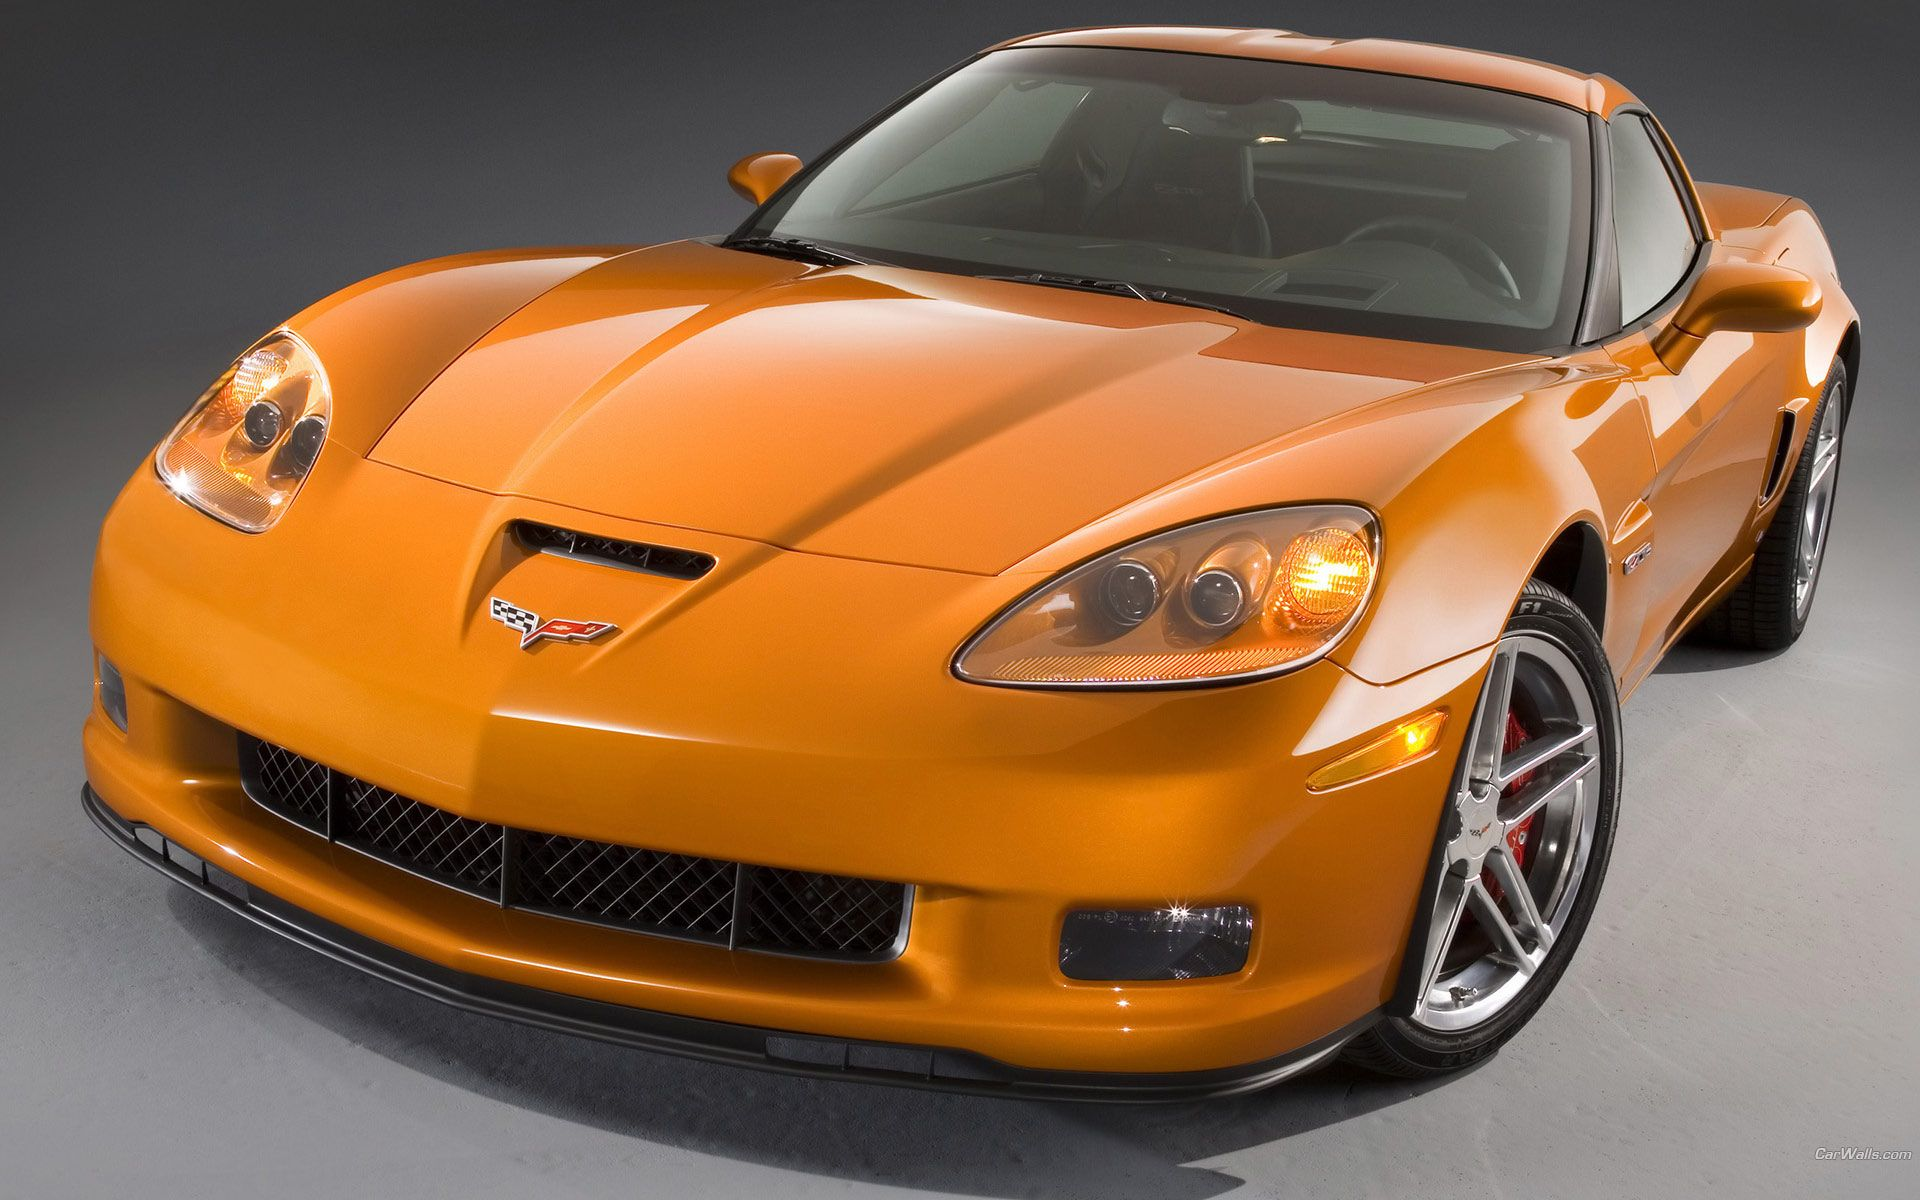 Ultra HD Chevrolet Corvette Z06 133 1920 1200 | Ultra HD Abstract ...